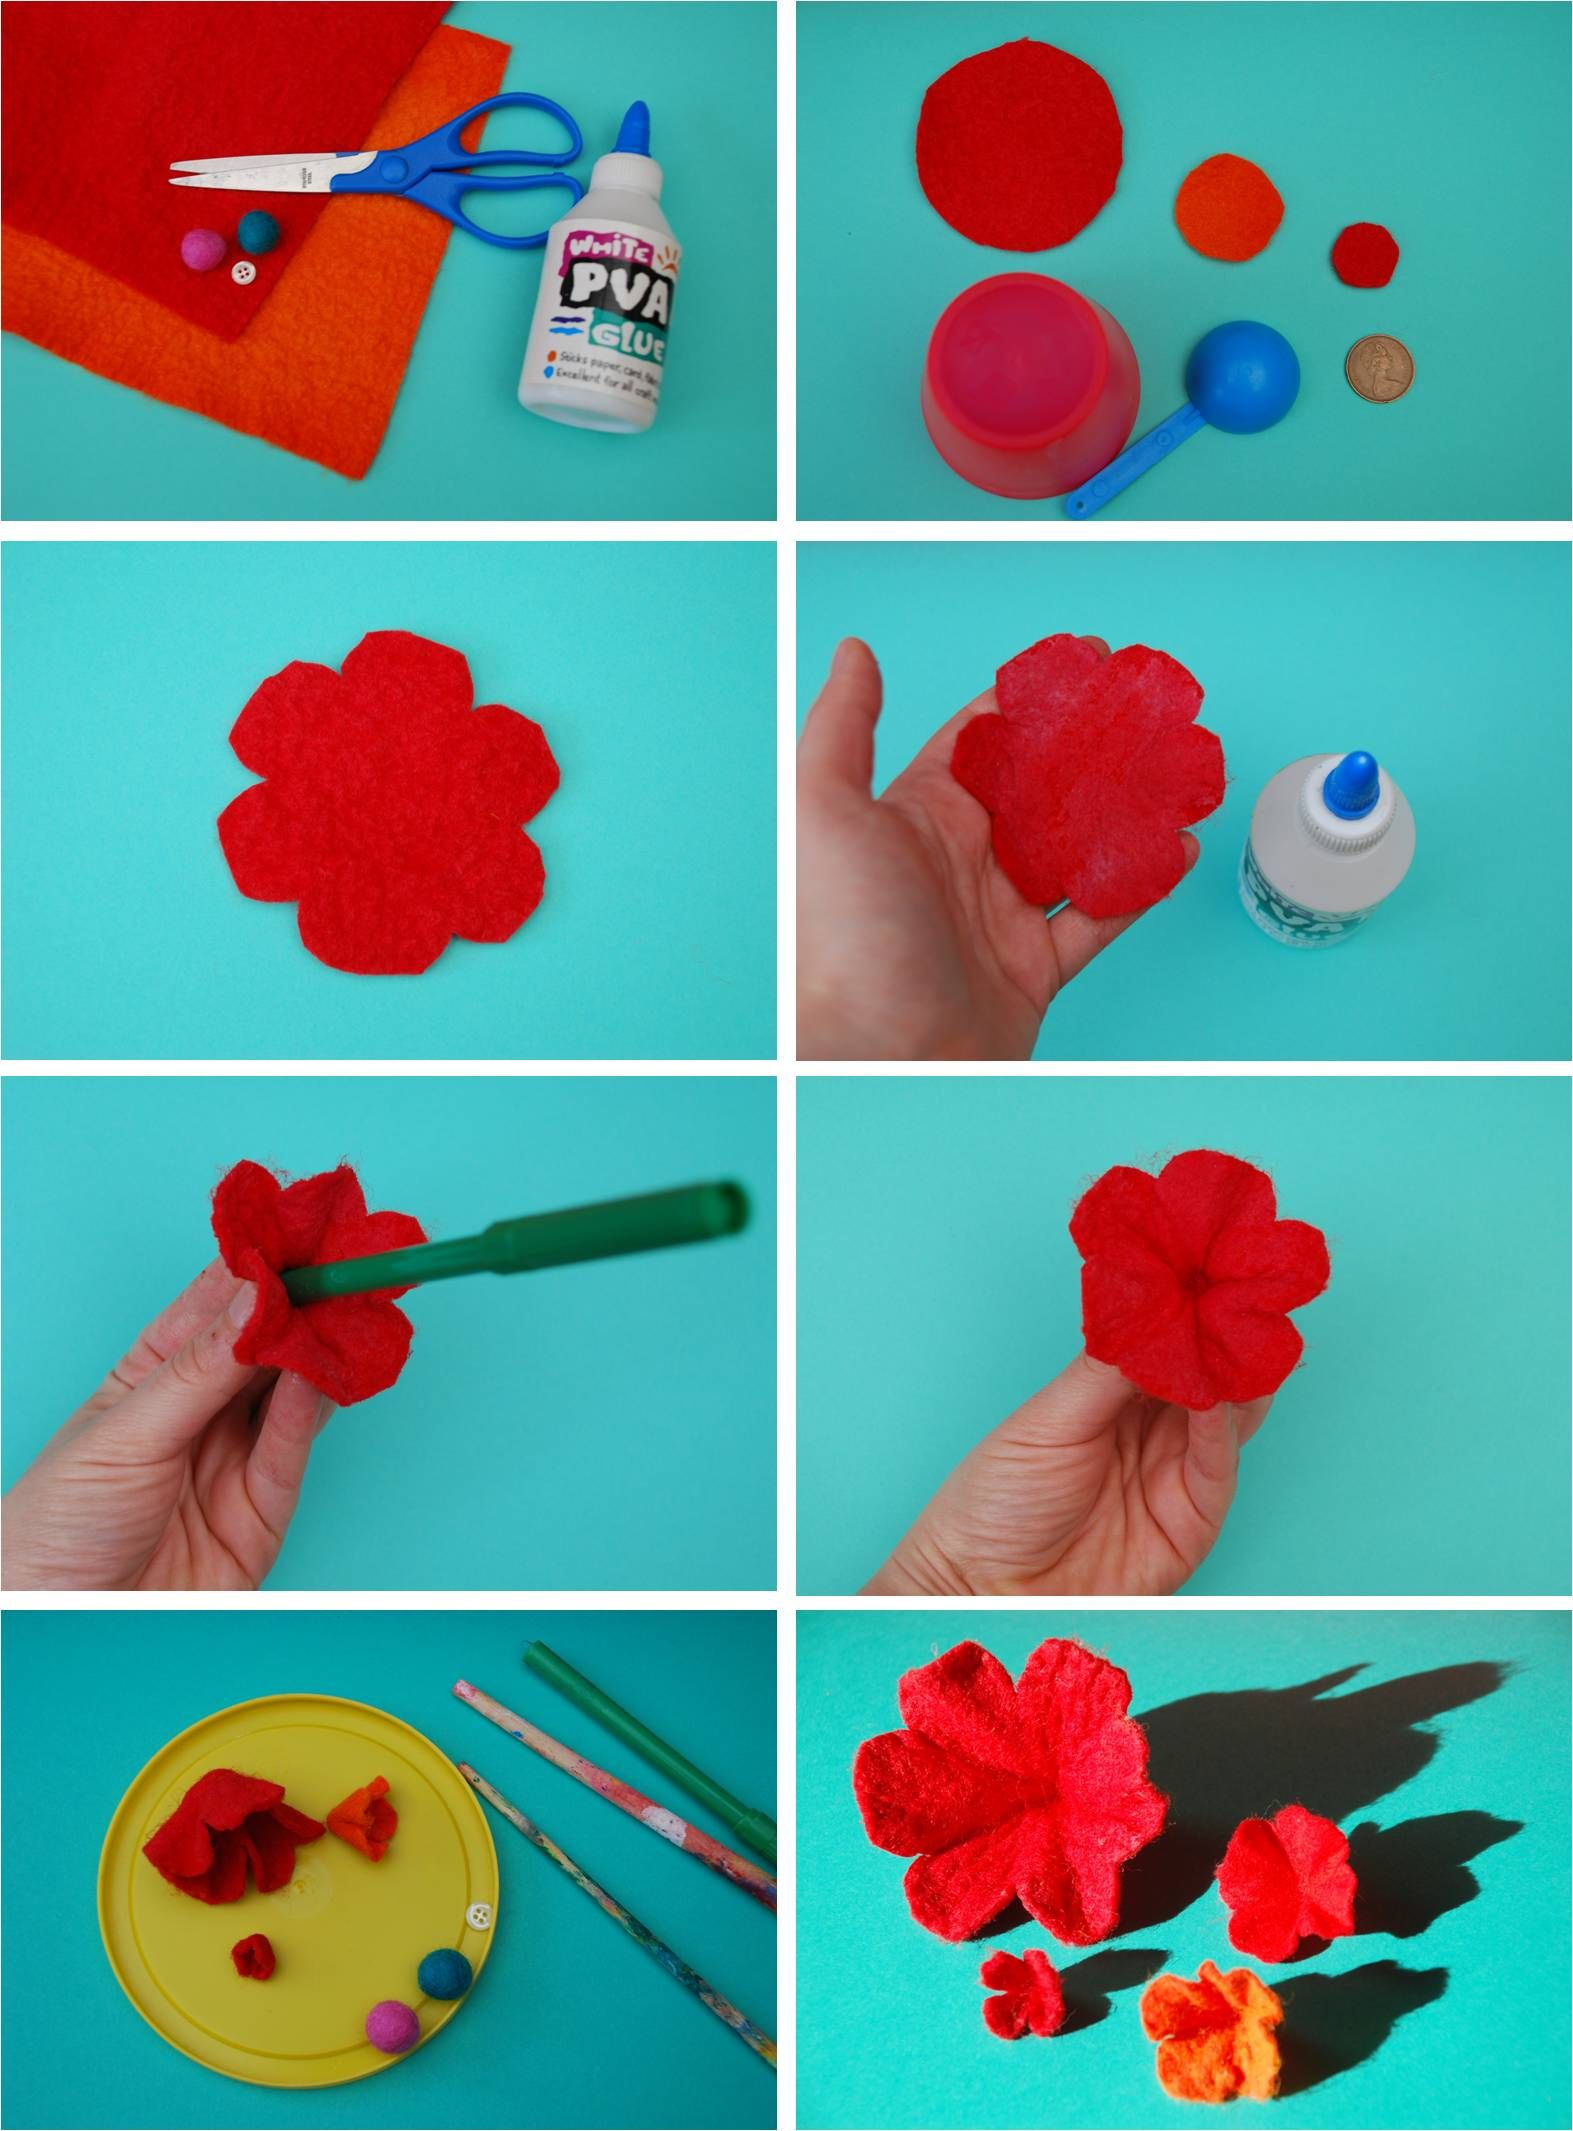 3 Easy Diy Storage Ideas For Small Kitchen: 1 How To Make 3d Felt Flowers